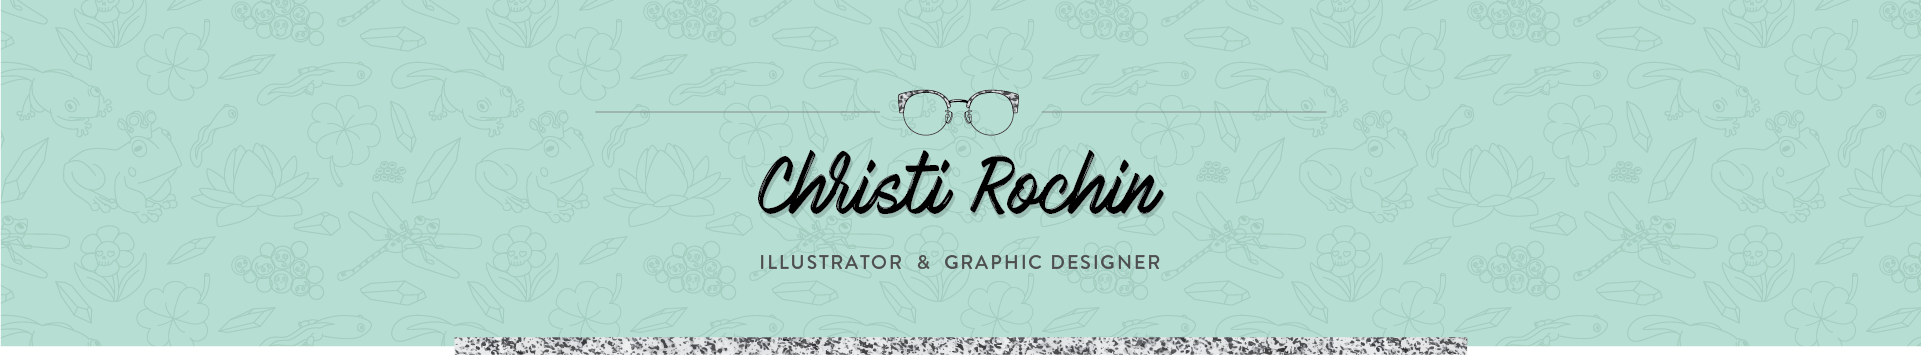 Christi Rochin: Illustrator, Product Designer